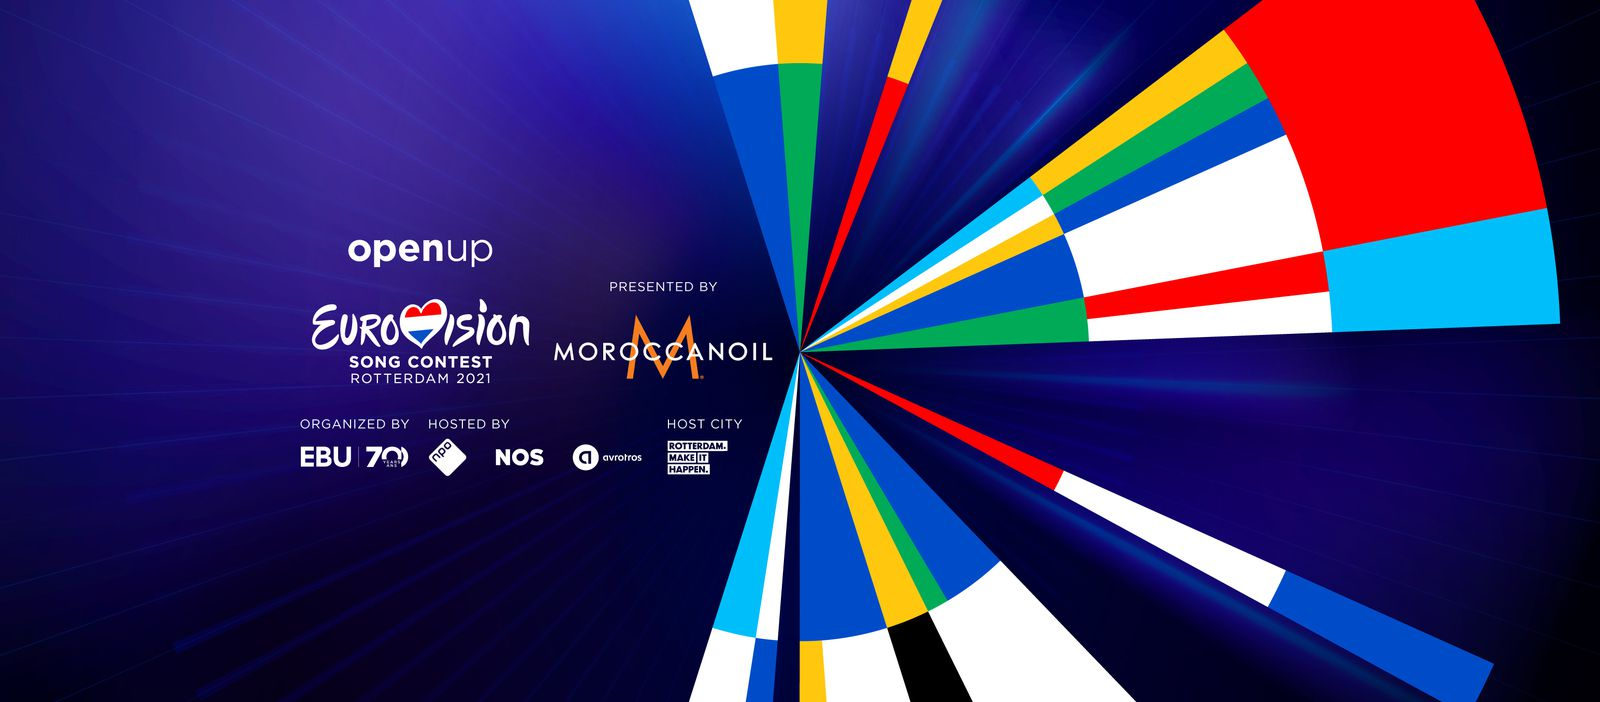 OFFICIAL RECAP: All 39 songs of the Eurovision Song Contest 2021